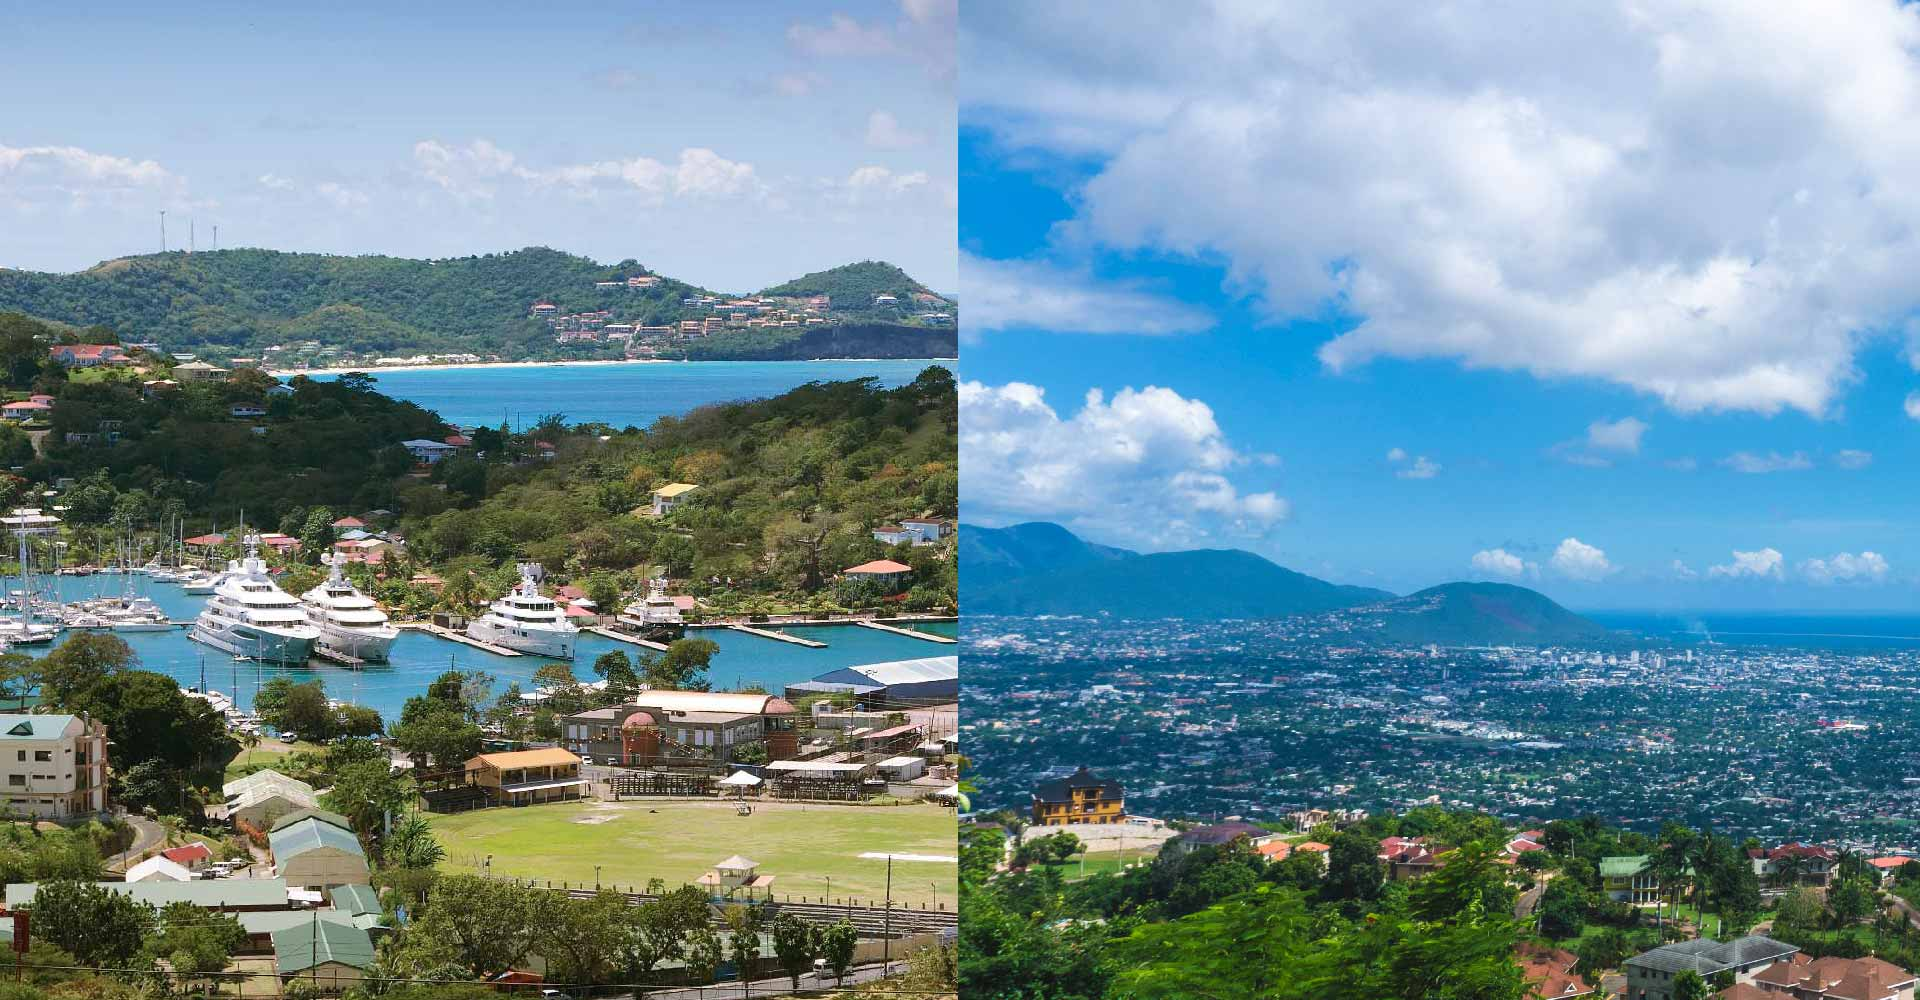 side by side photos of Grenada and Jamaica's landscape